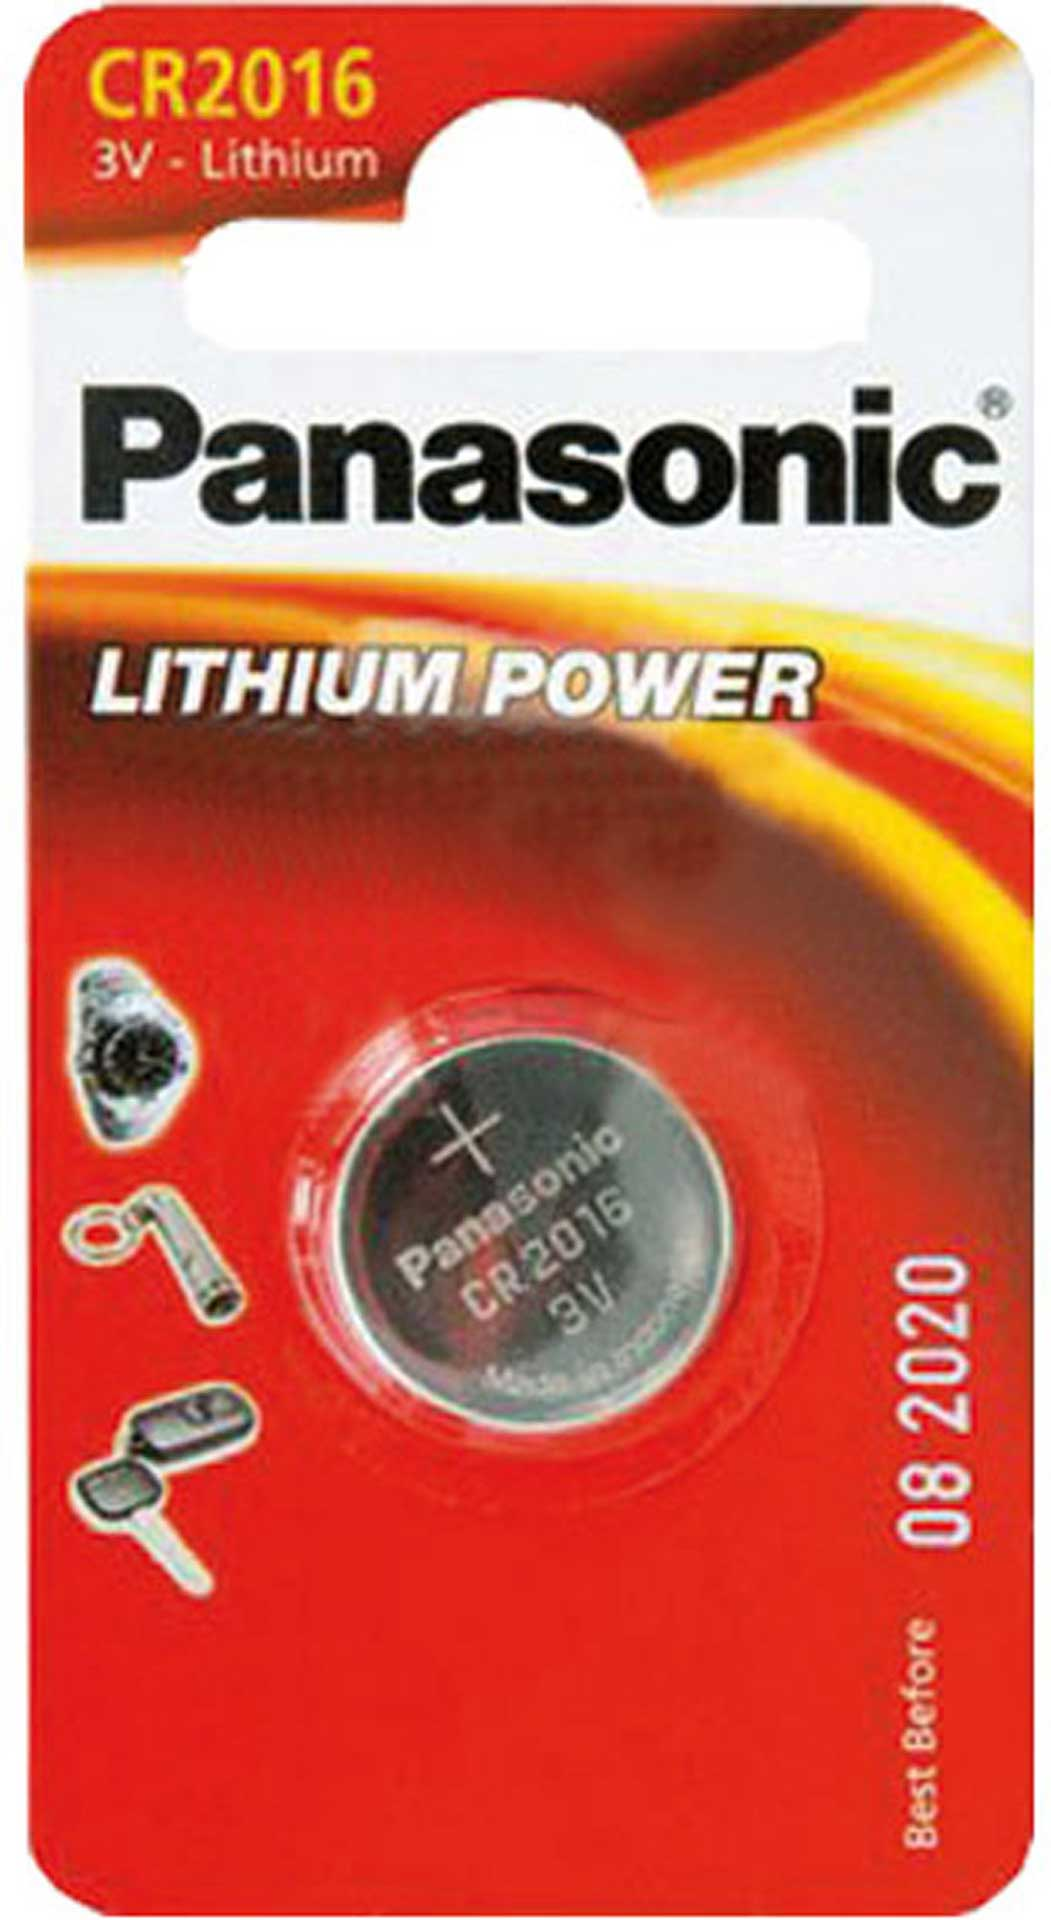 PANASONIC LITHIUM BUTTON CELL BATTERY CR2016 3V 1 PCS